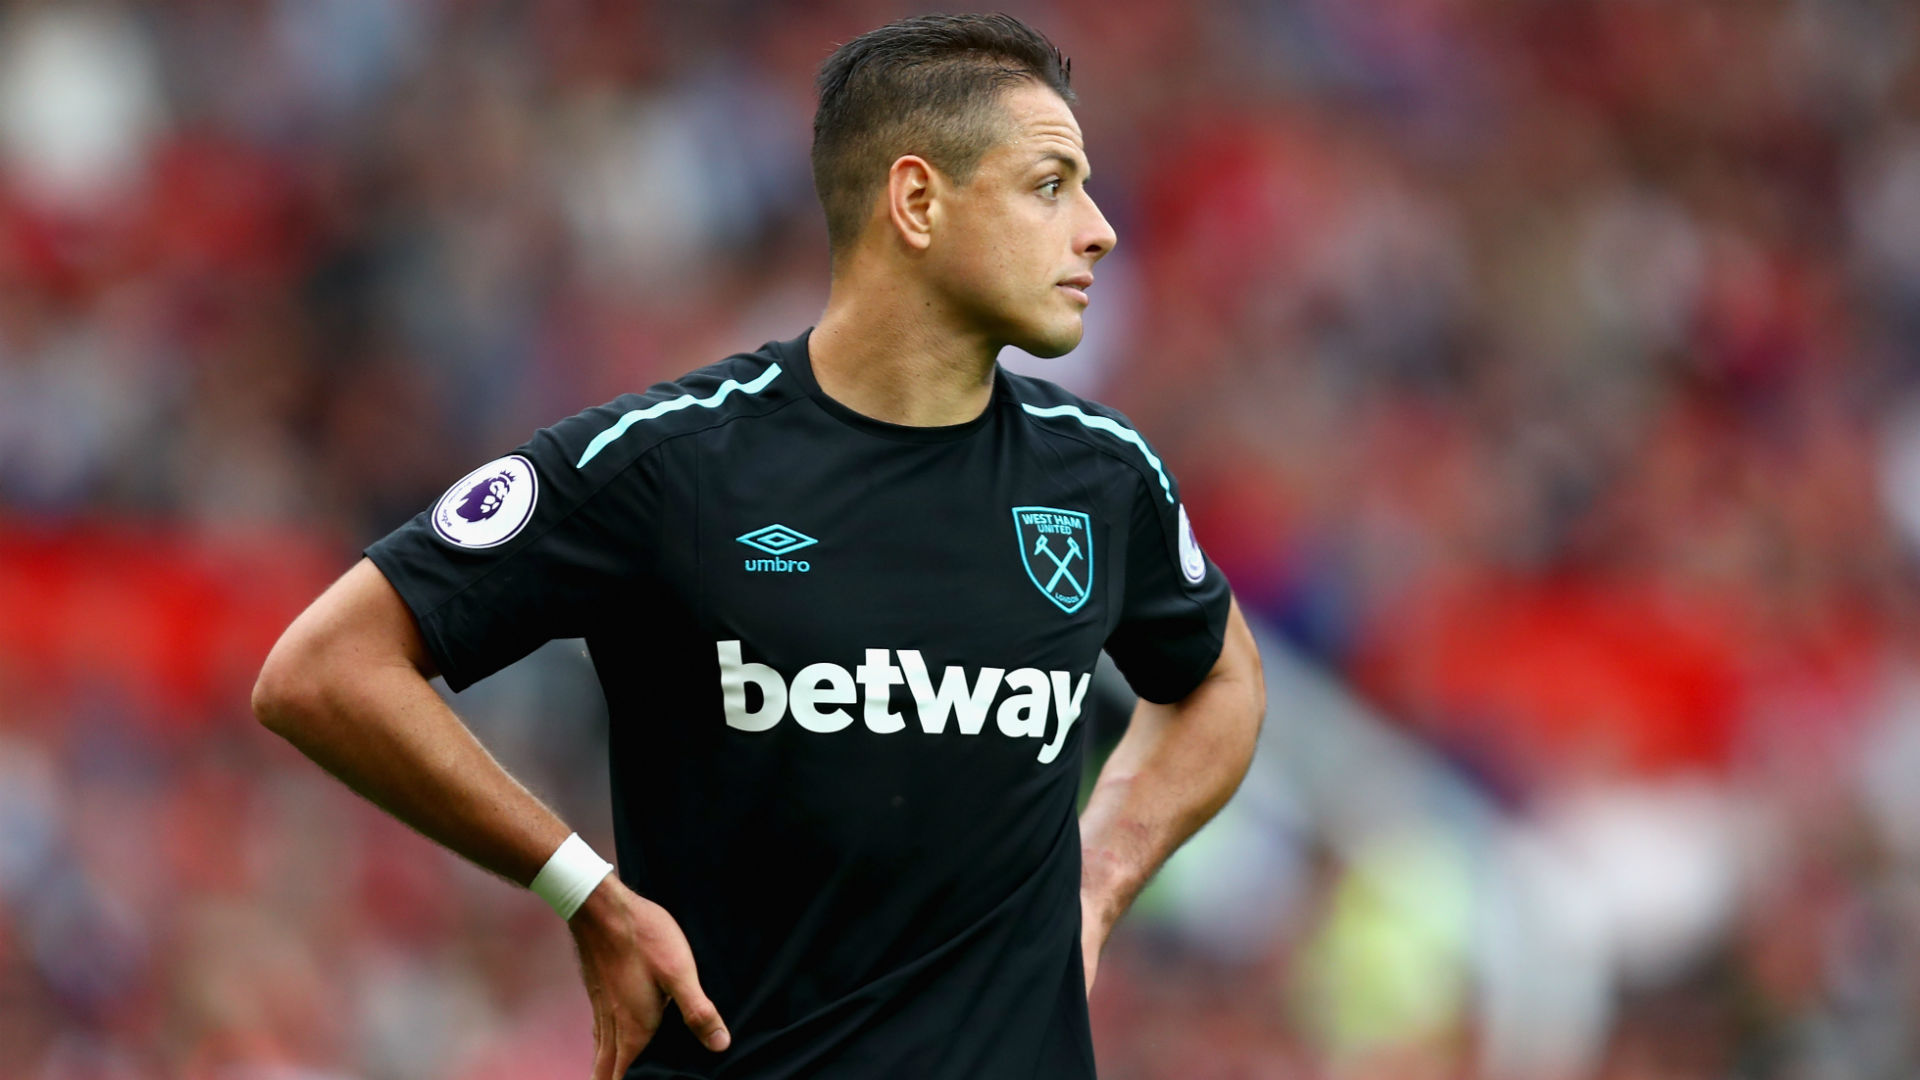 West Ham vendería al 'Chicharito' en este mercado de pases